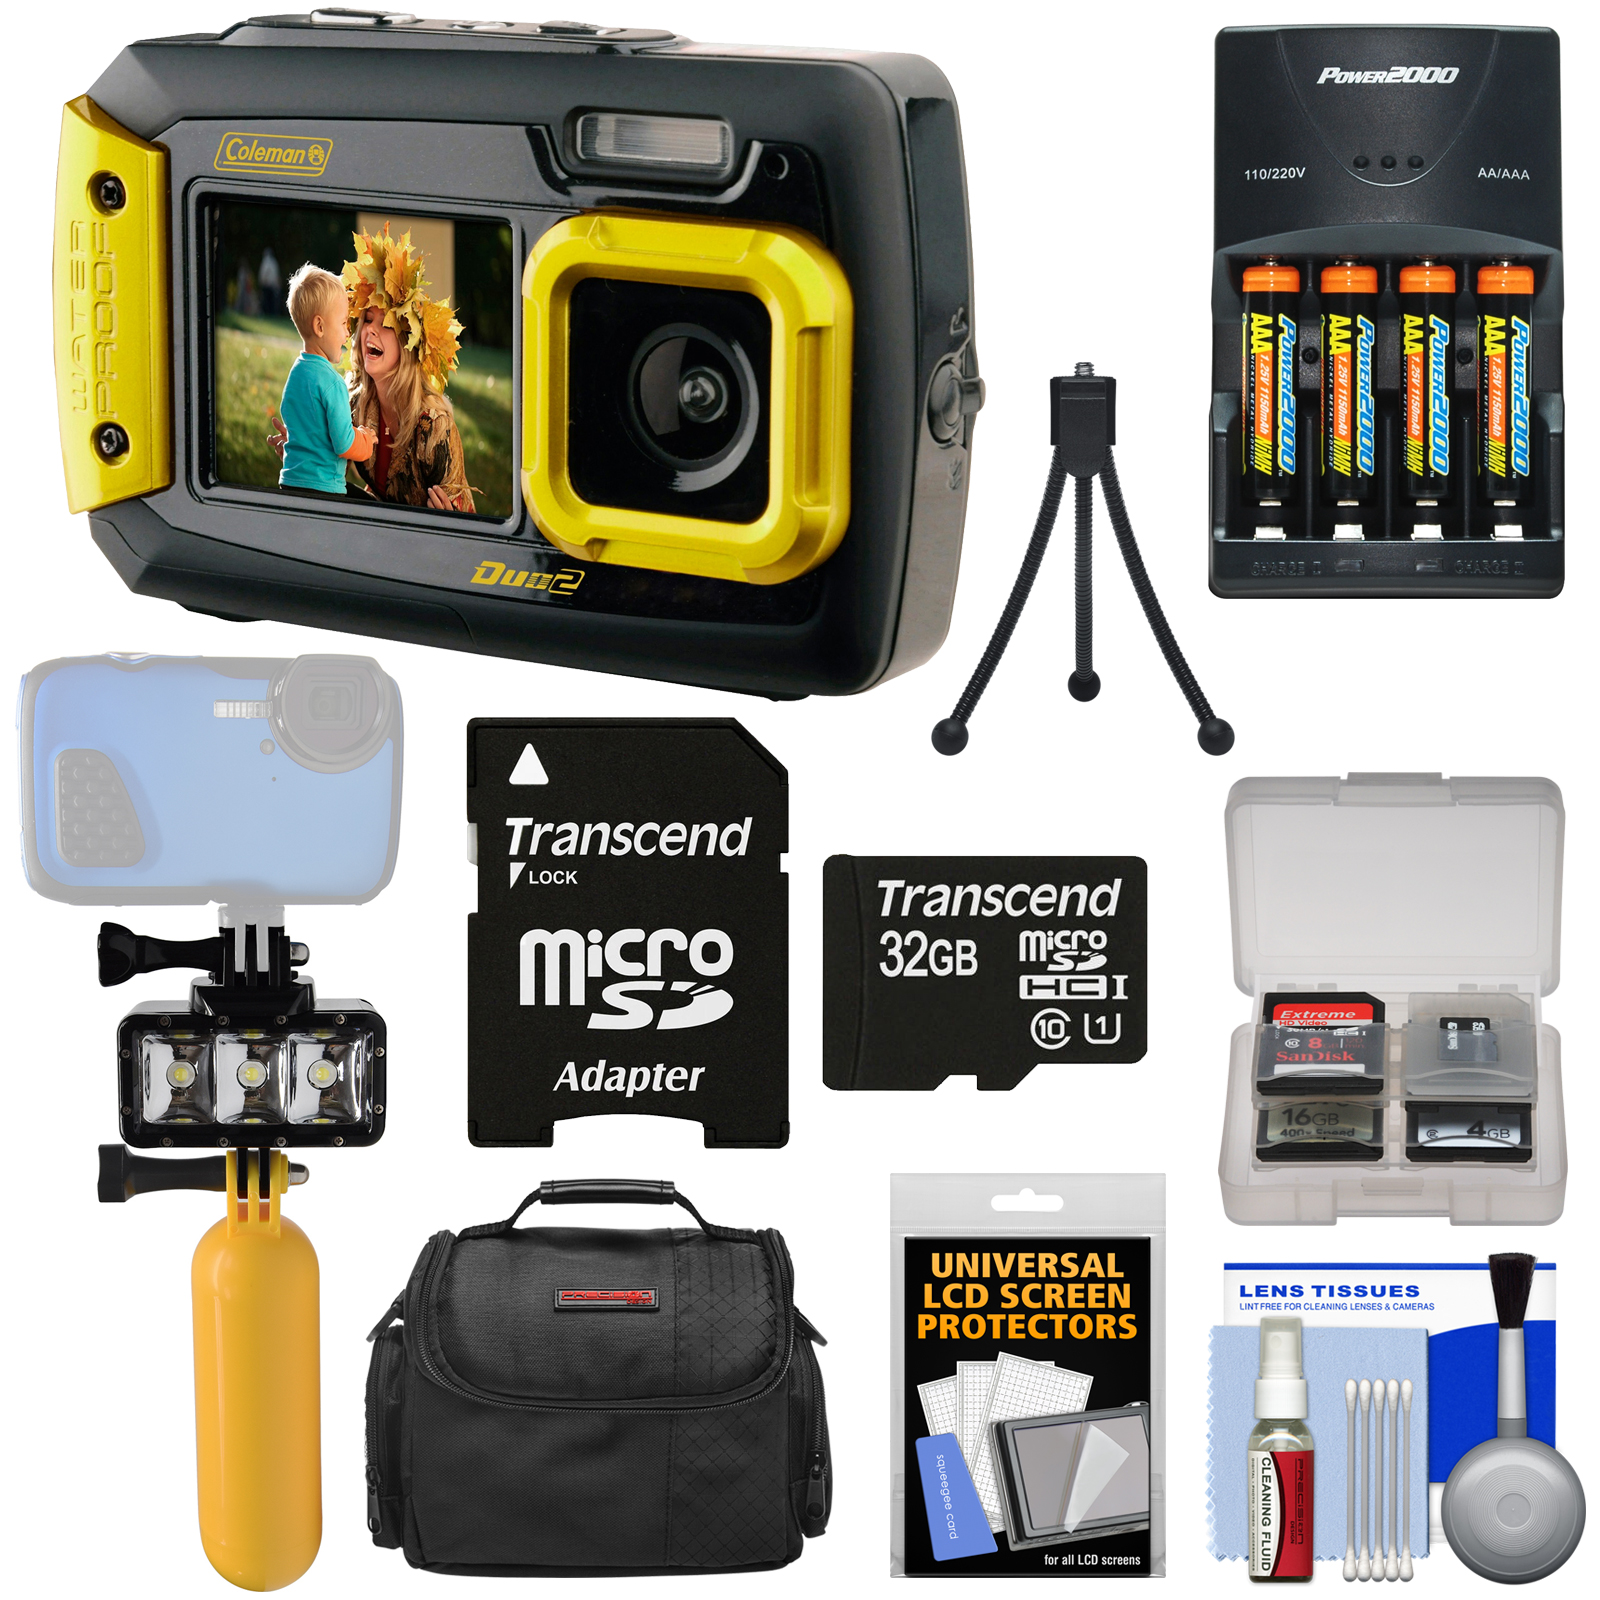 Coleman Duo 2V9WP Dual Screen Shock & Waterproof Digital Camera (Yellow) + 32GB Card + Batteries & Charger + Diving LED... by Coleman